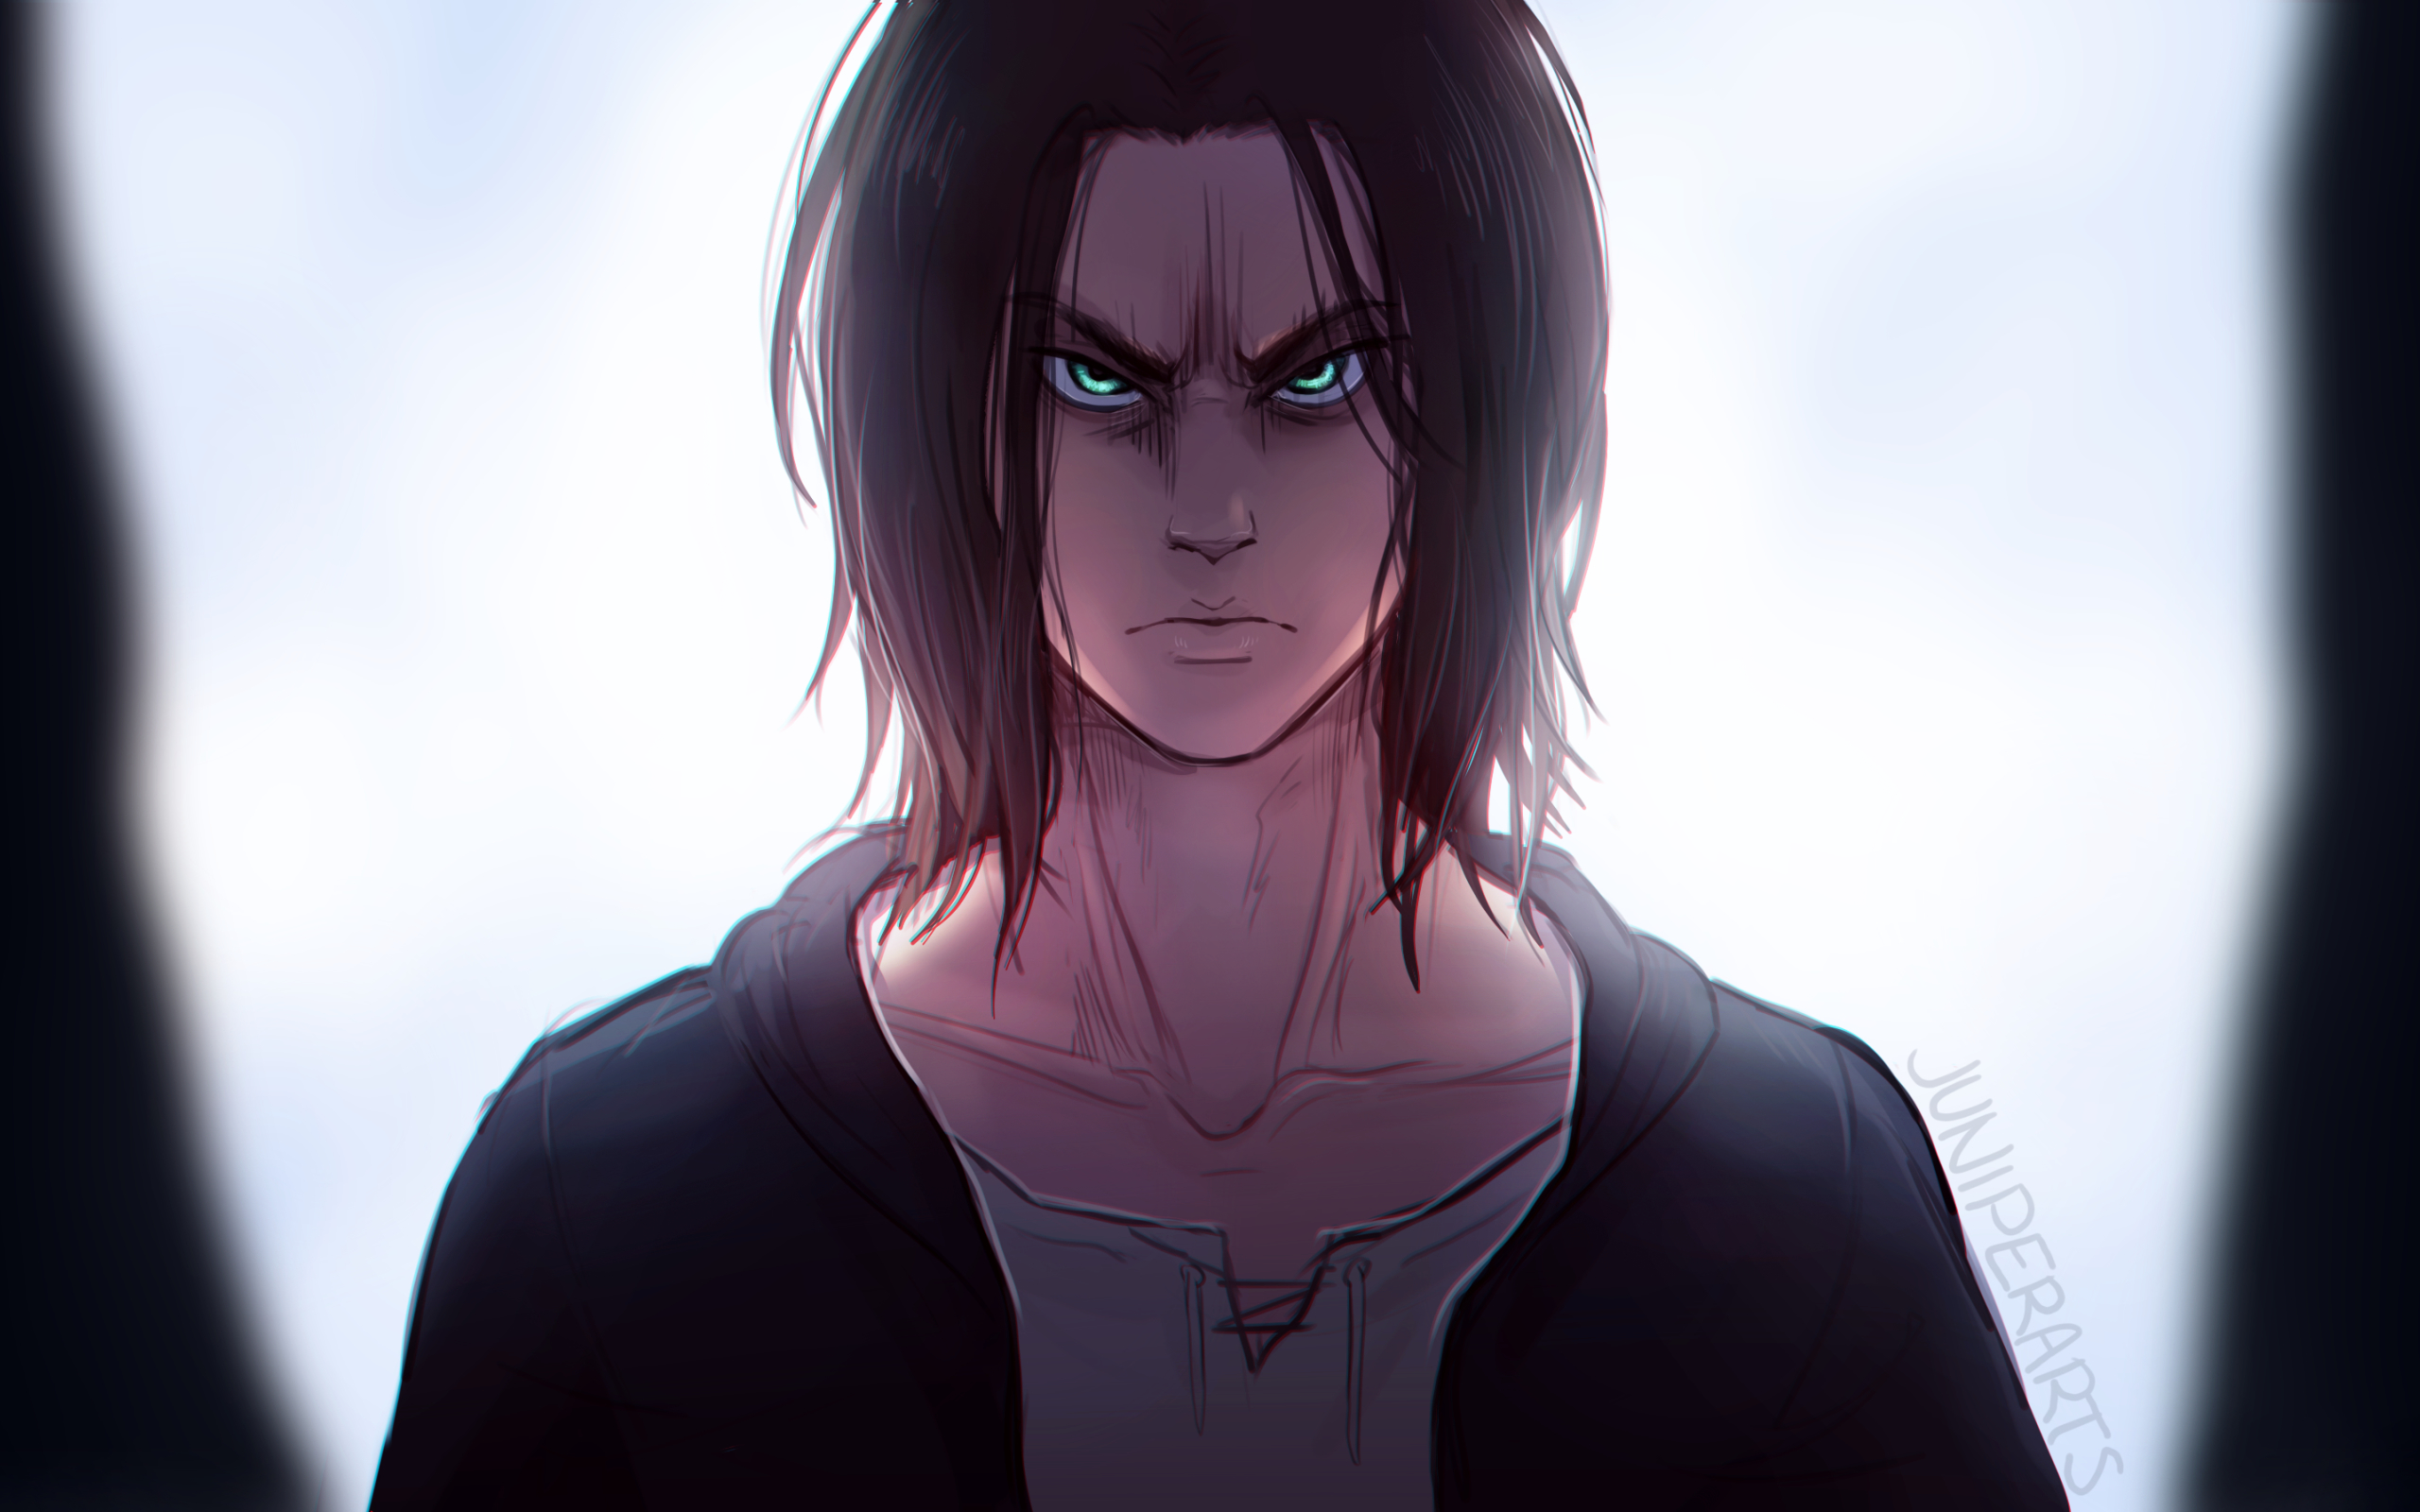 2560x1600 Eren Yeager 2560x1600 Resolution Wallpaper Hd Anime 4k Wallpapers Images Photos And Background